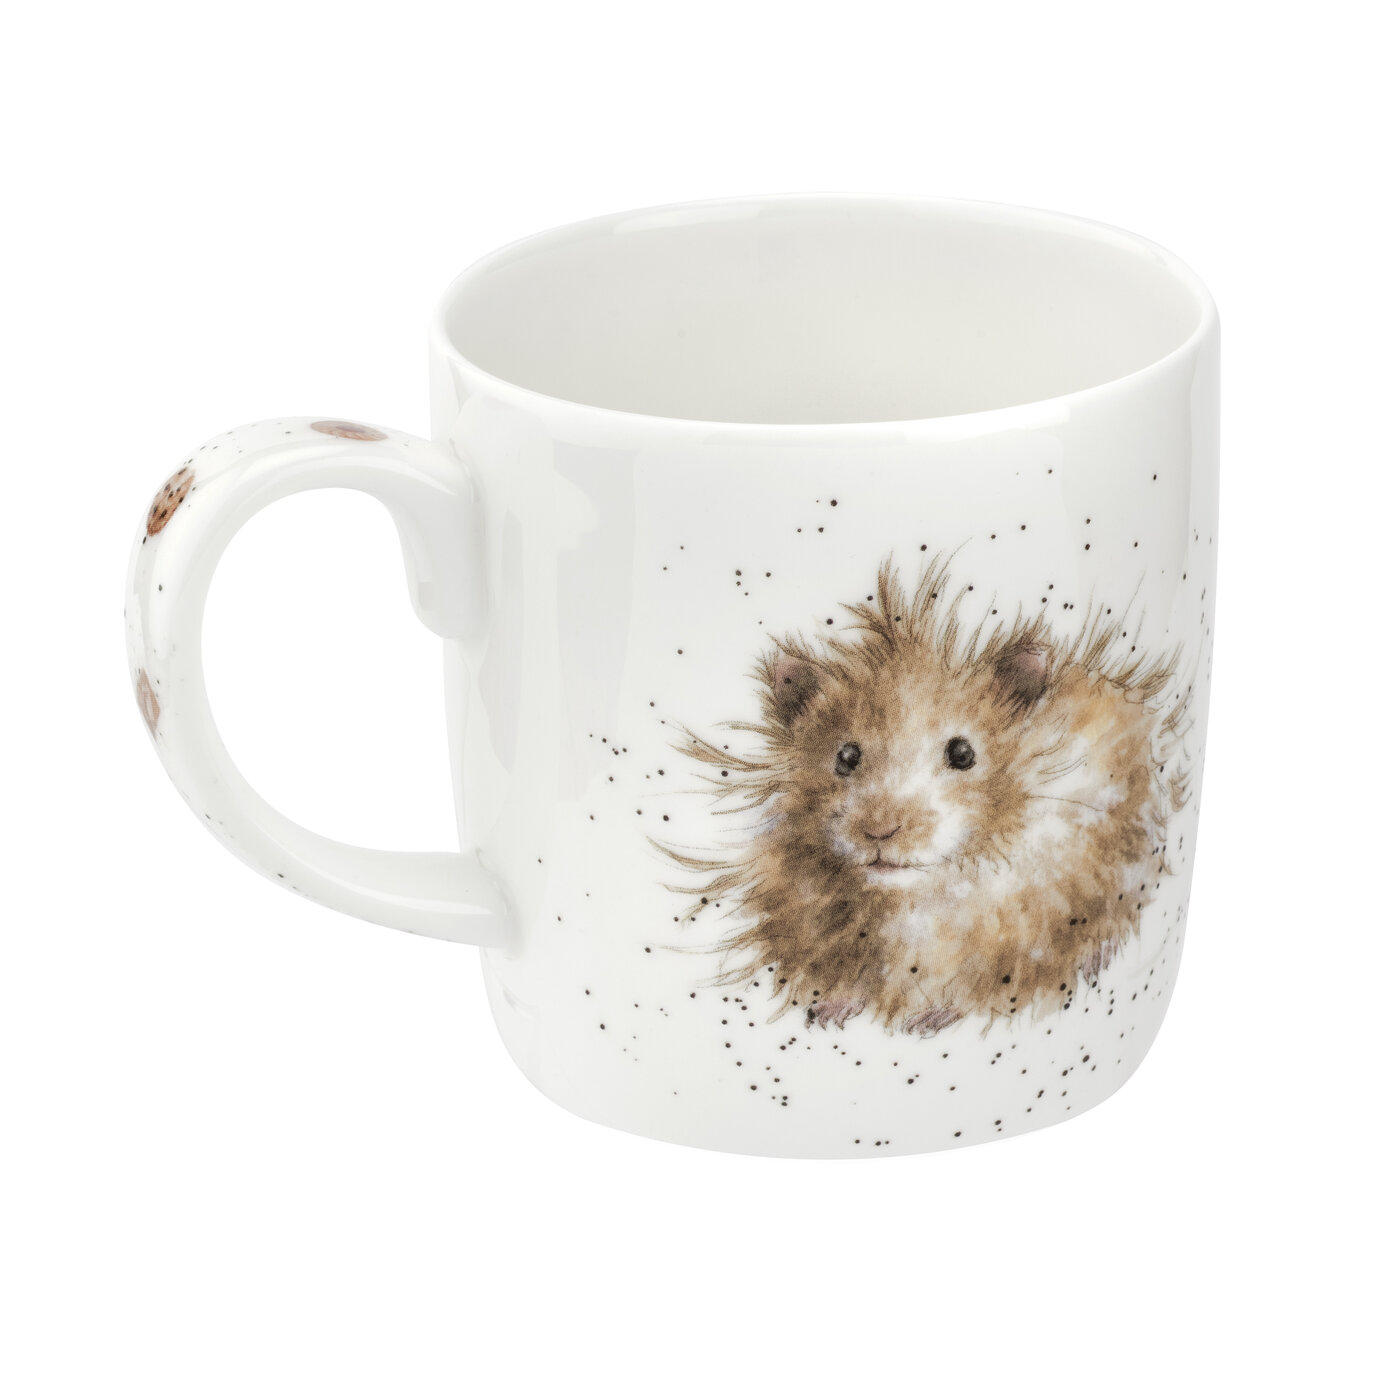 Wrendale Designs 14 Ounce Mug Diet Starts Tomorrow (Hamster) image number 1